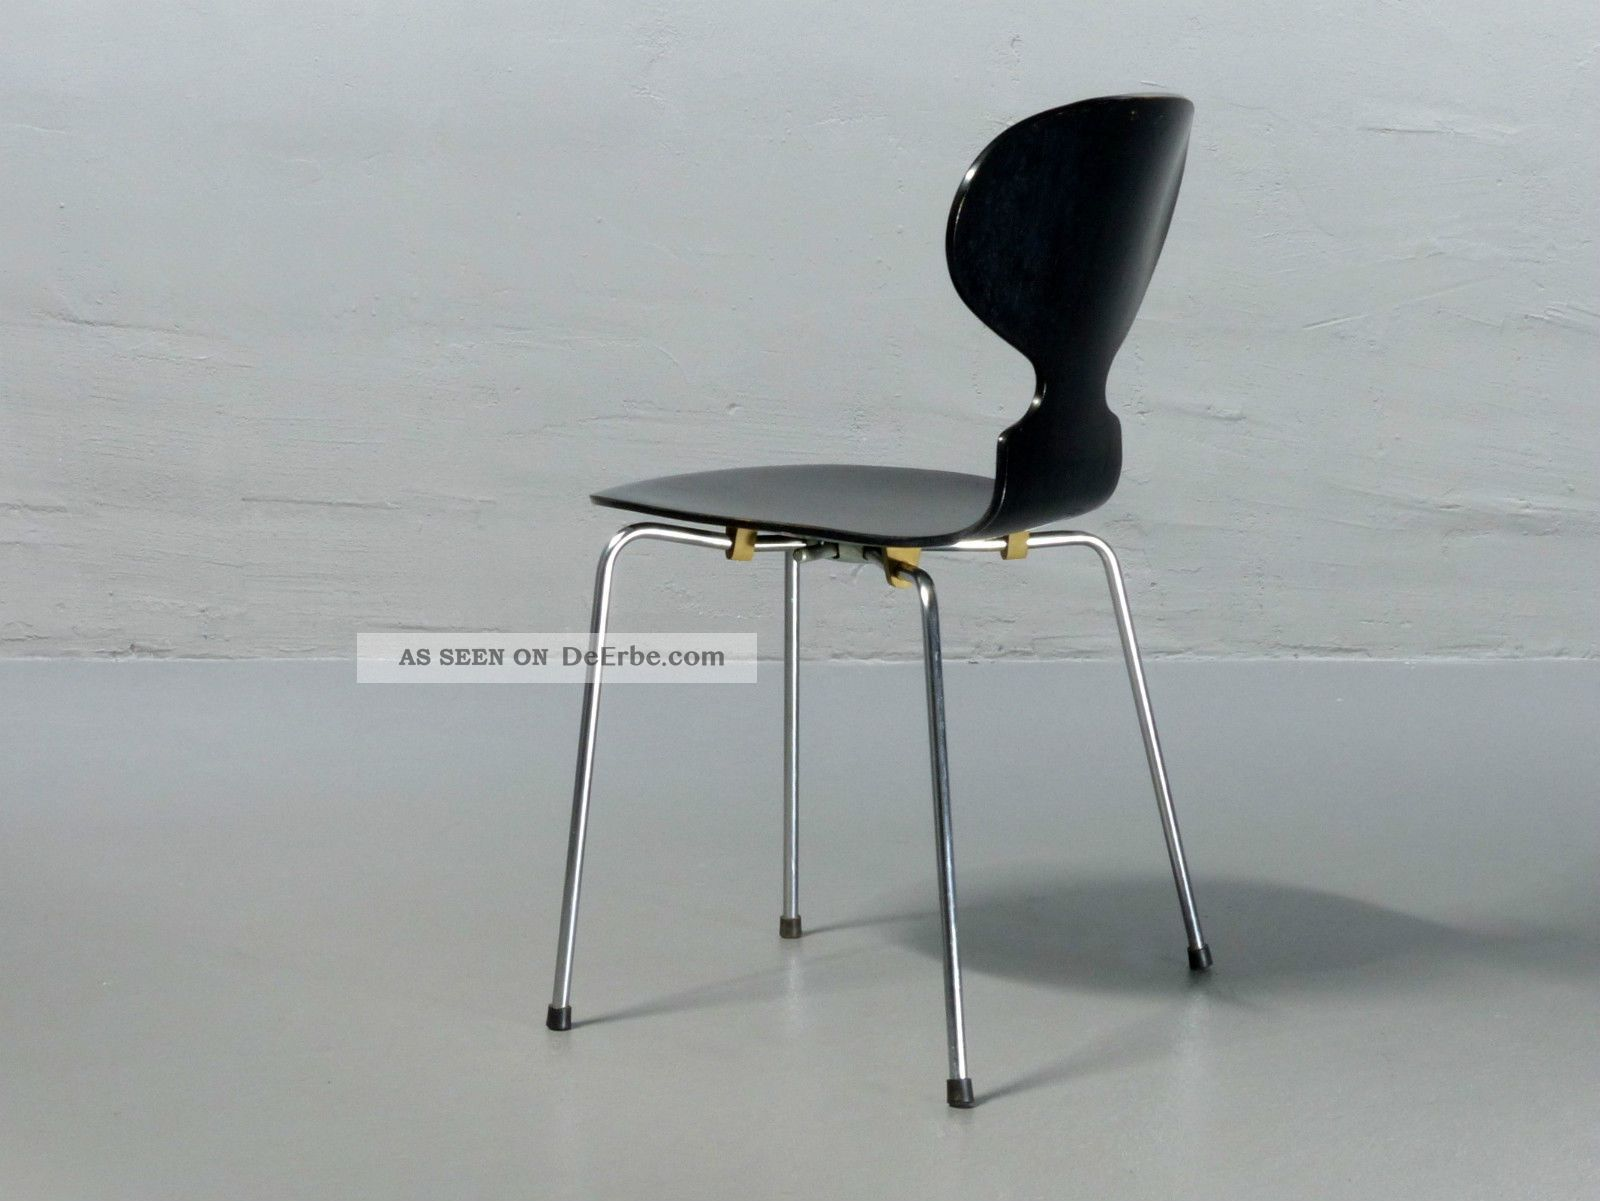 1967 arne jacobsen ameise 3101 fritz hansen 1967 stuhl chair chaise ant fourmi. Black Bedroom Furniture Sets. Home Design Ideas